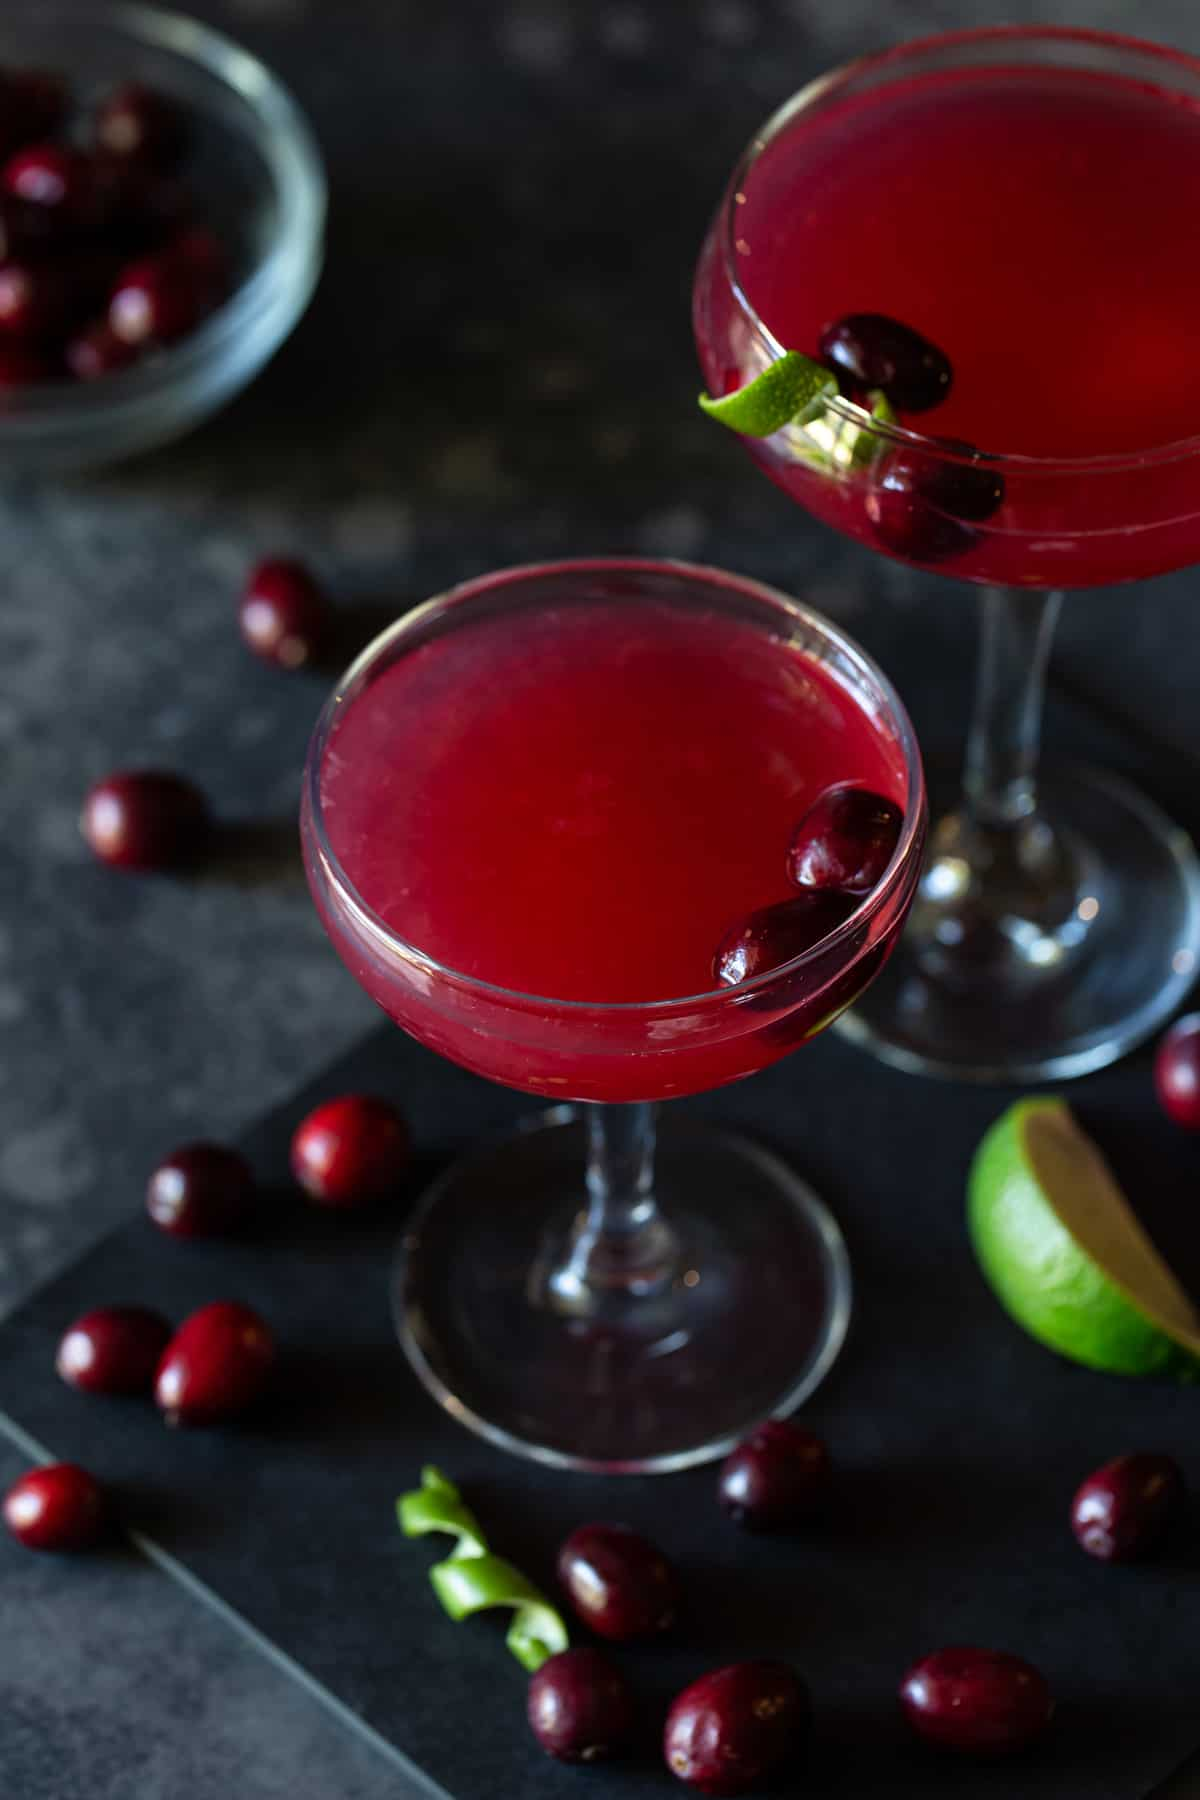 Fresh cranberries floating in two coupe glasses filled with gimlet drinks.